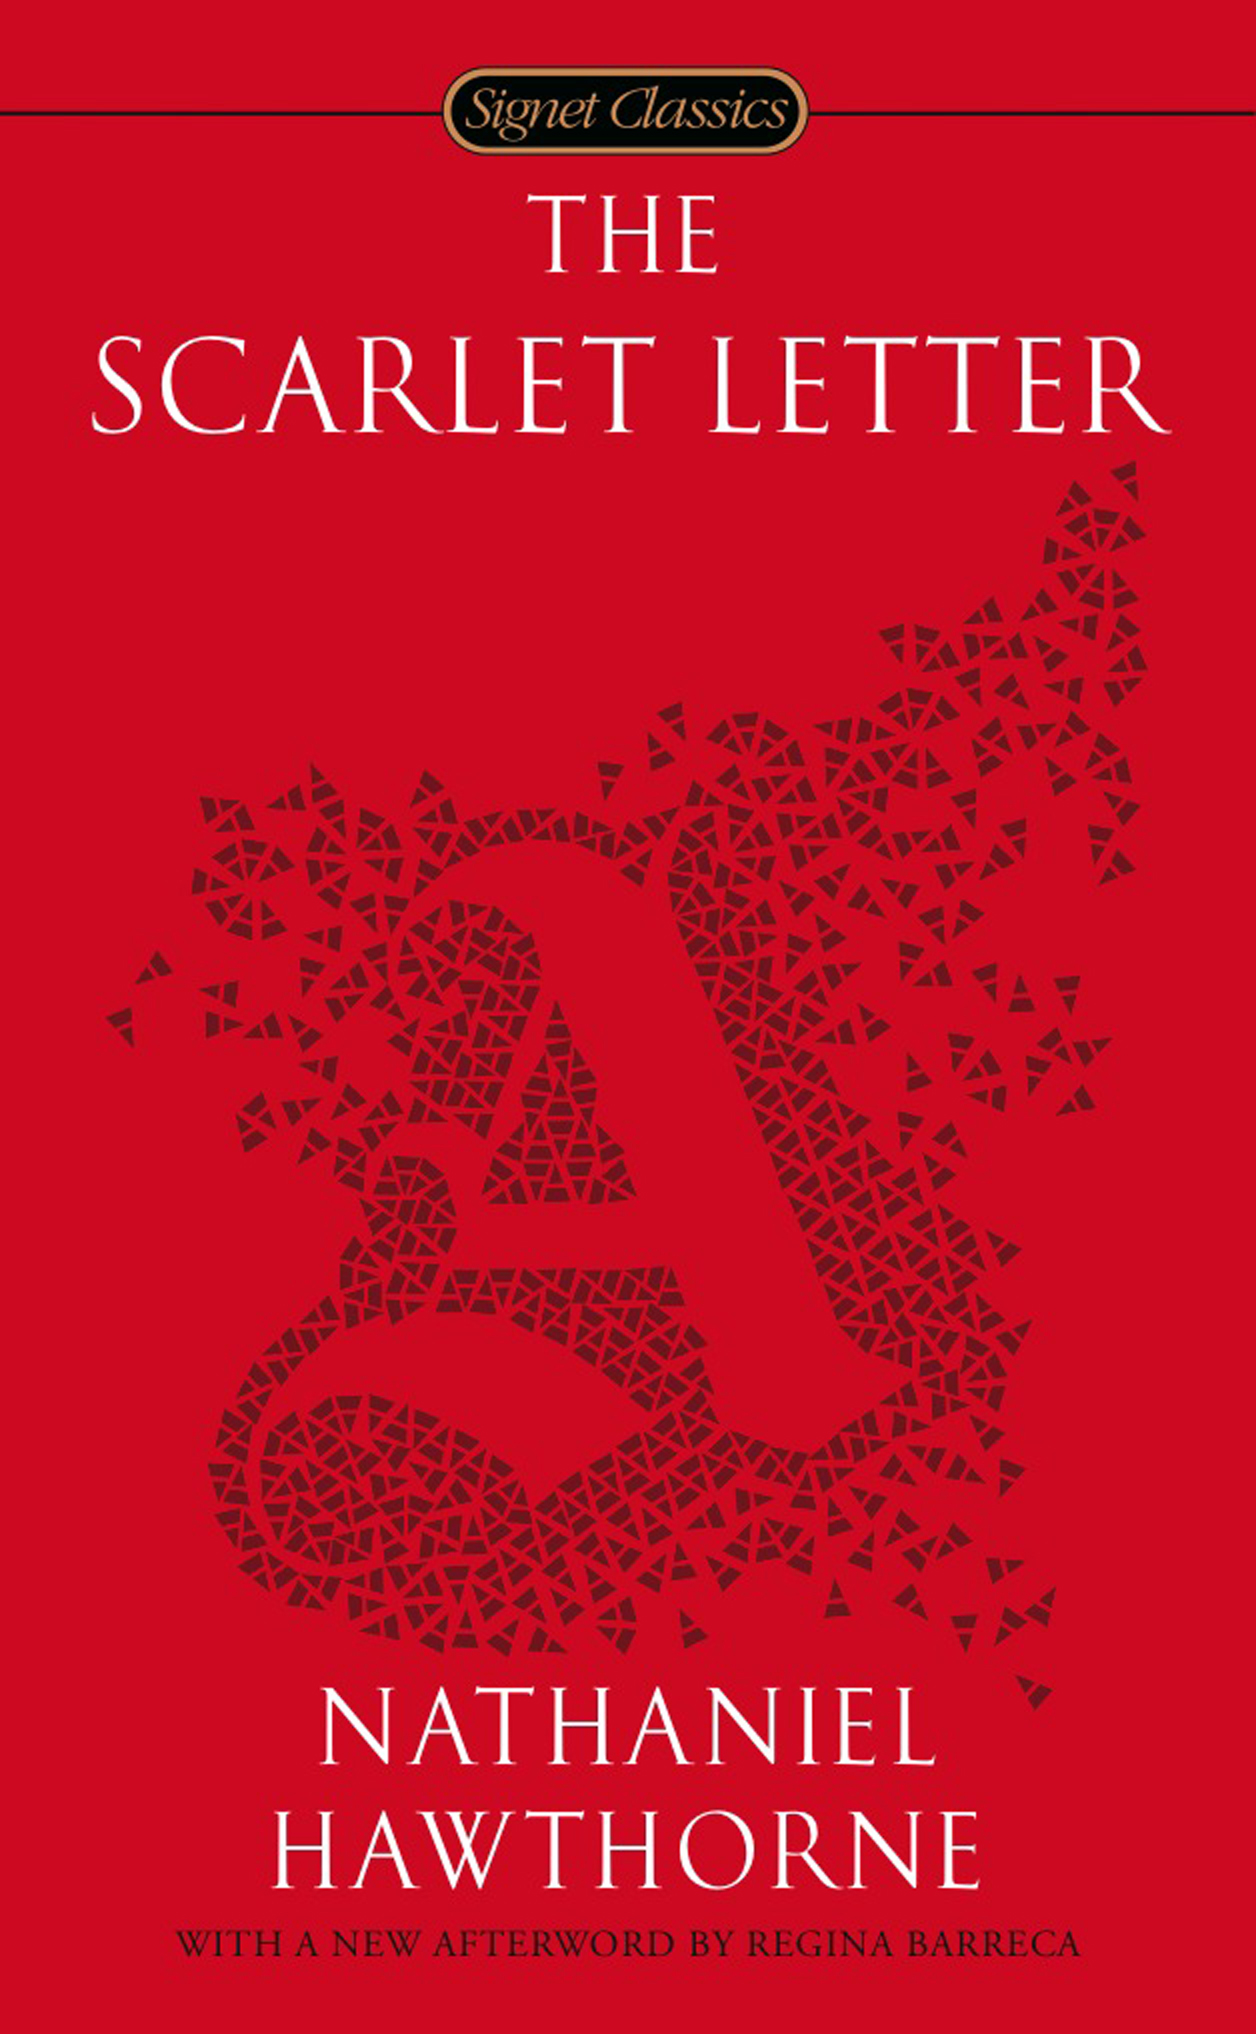 an analysis of the scarlet letter by nathaniel hawthrone Nathaniel hawthorne was a 19th century american novelist and short story writer he is seen as a key figure in the development of american literature for his tales of the nation's colonial history.